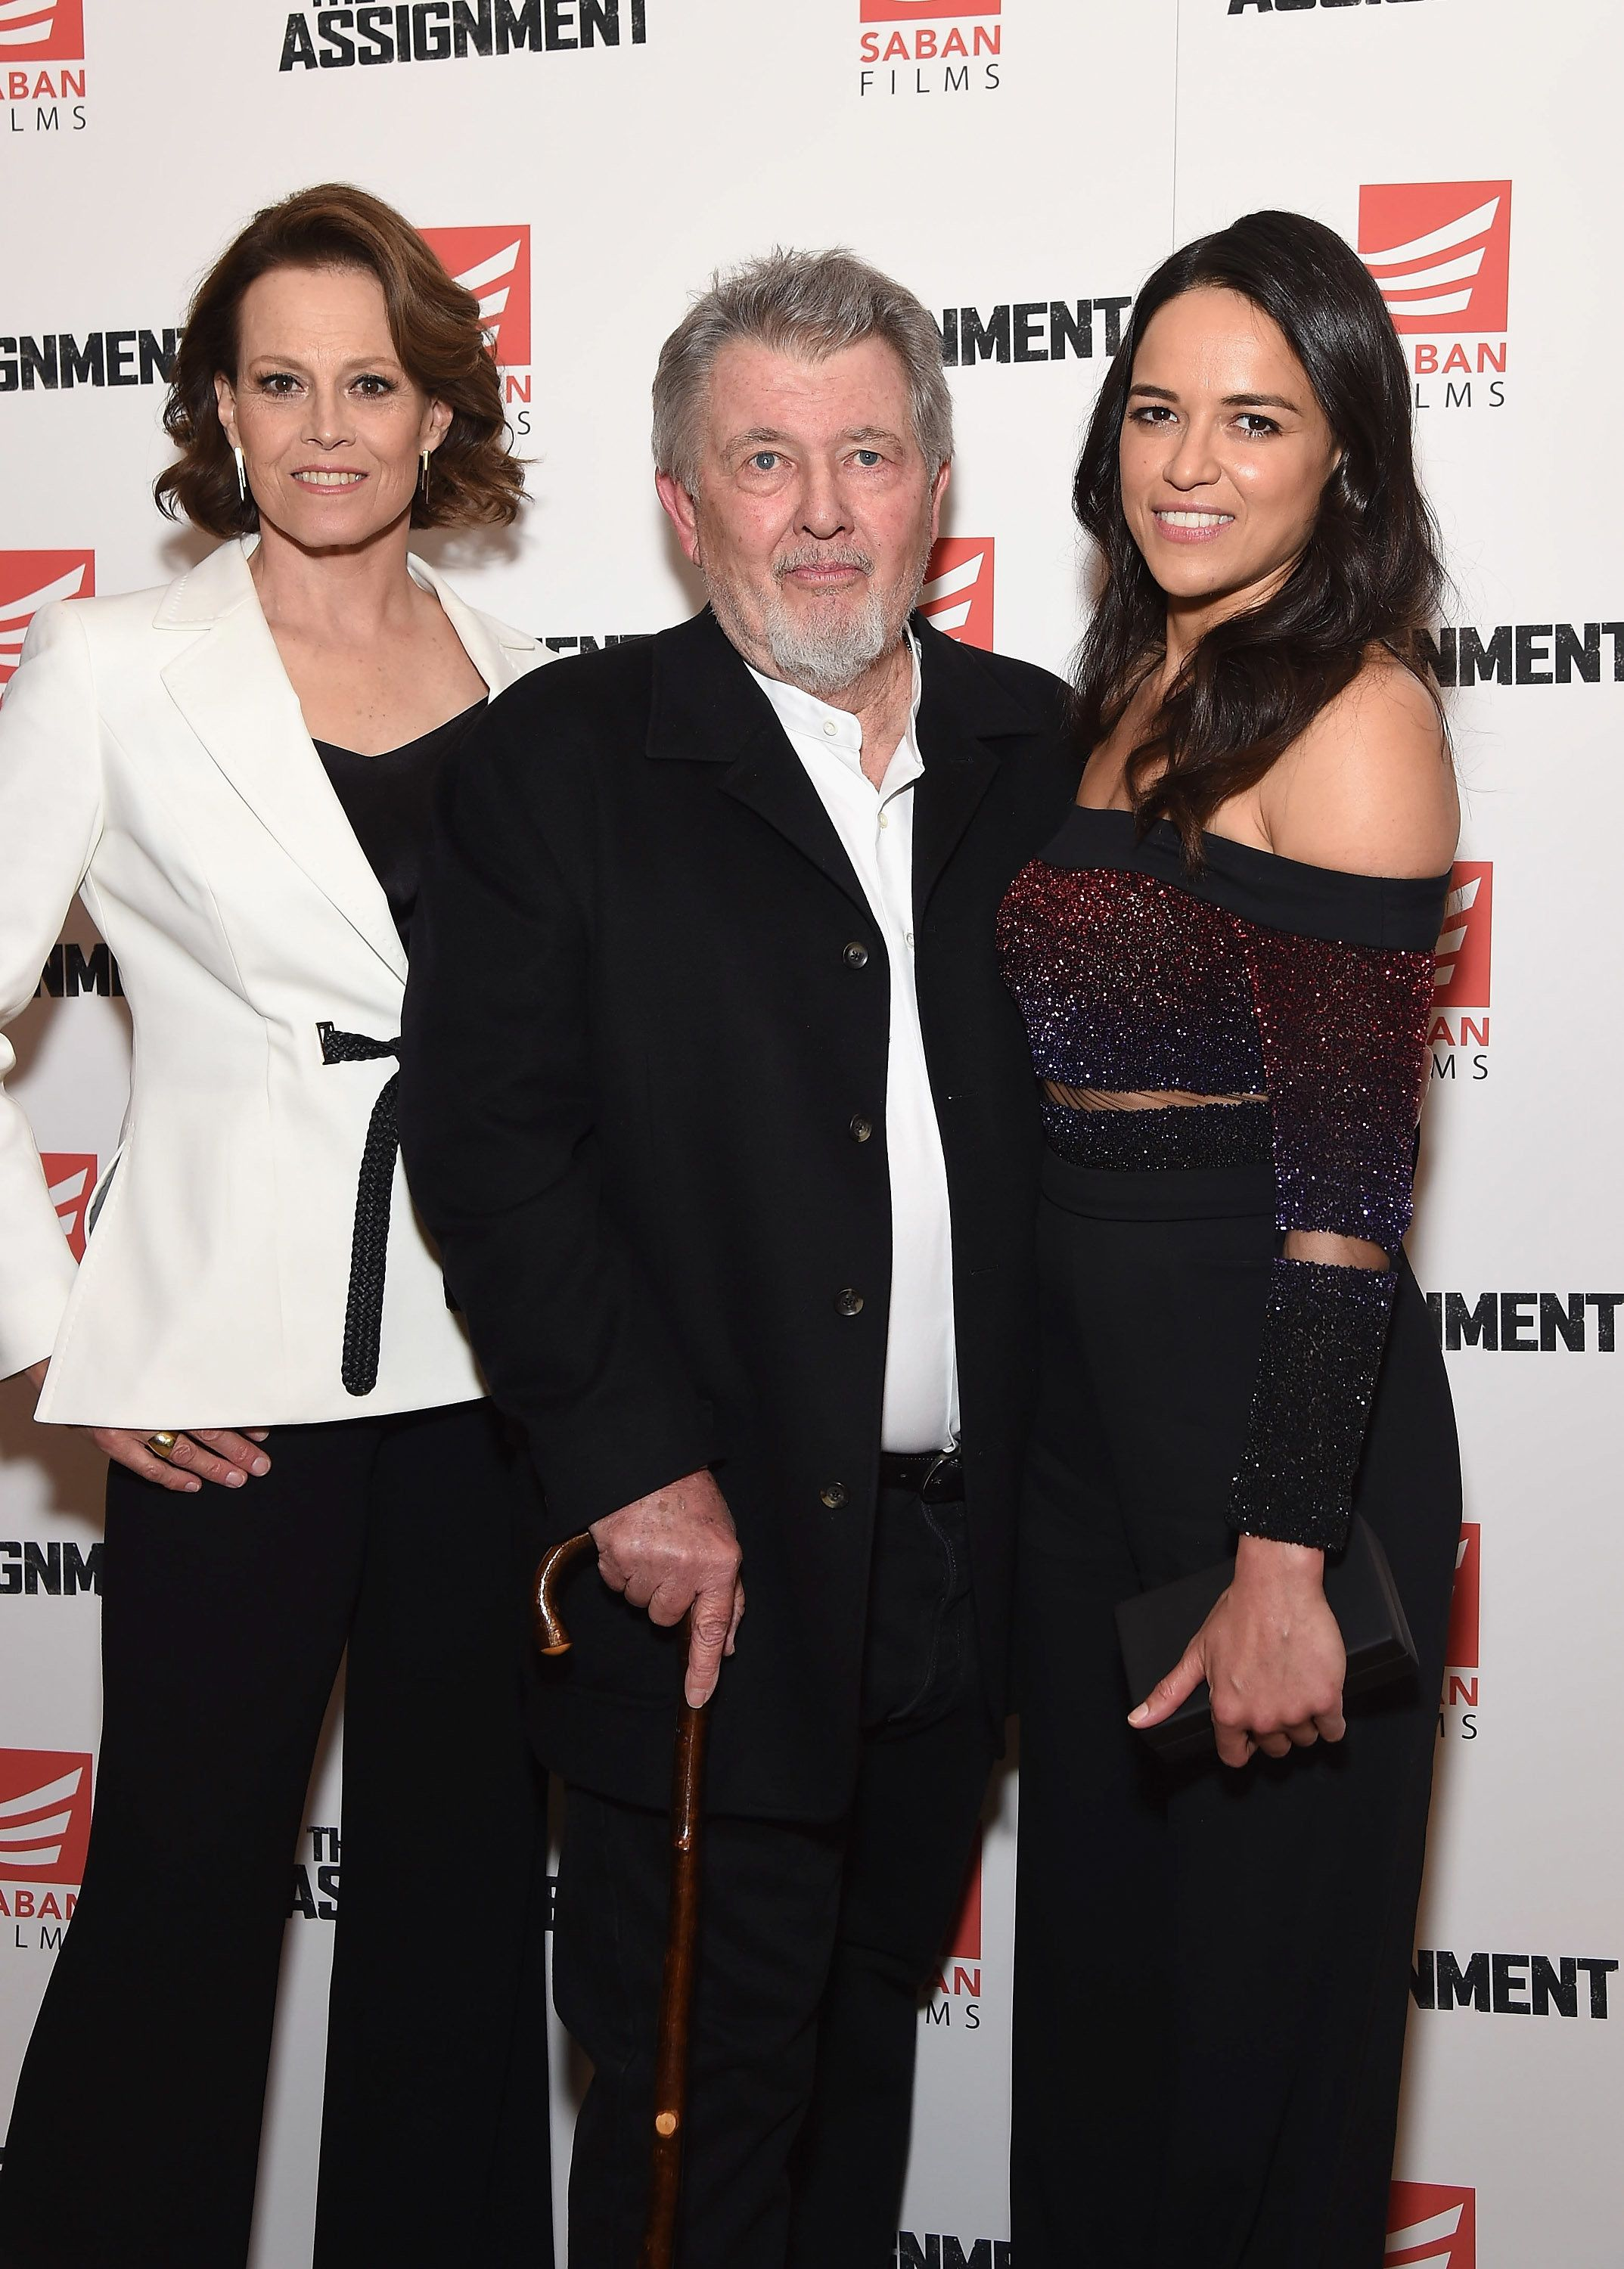 NEW YORK, NY - APRIL 03:  Director/writer Walter Hill (C) and actors Sigourney Weaver (L) and Michelle Rodriguez attend 'The Assignment' New York screening at the Whitby Hotel on April 3, 2017 in New York City.  (Photo by Gary Gershoff/WireImage)